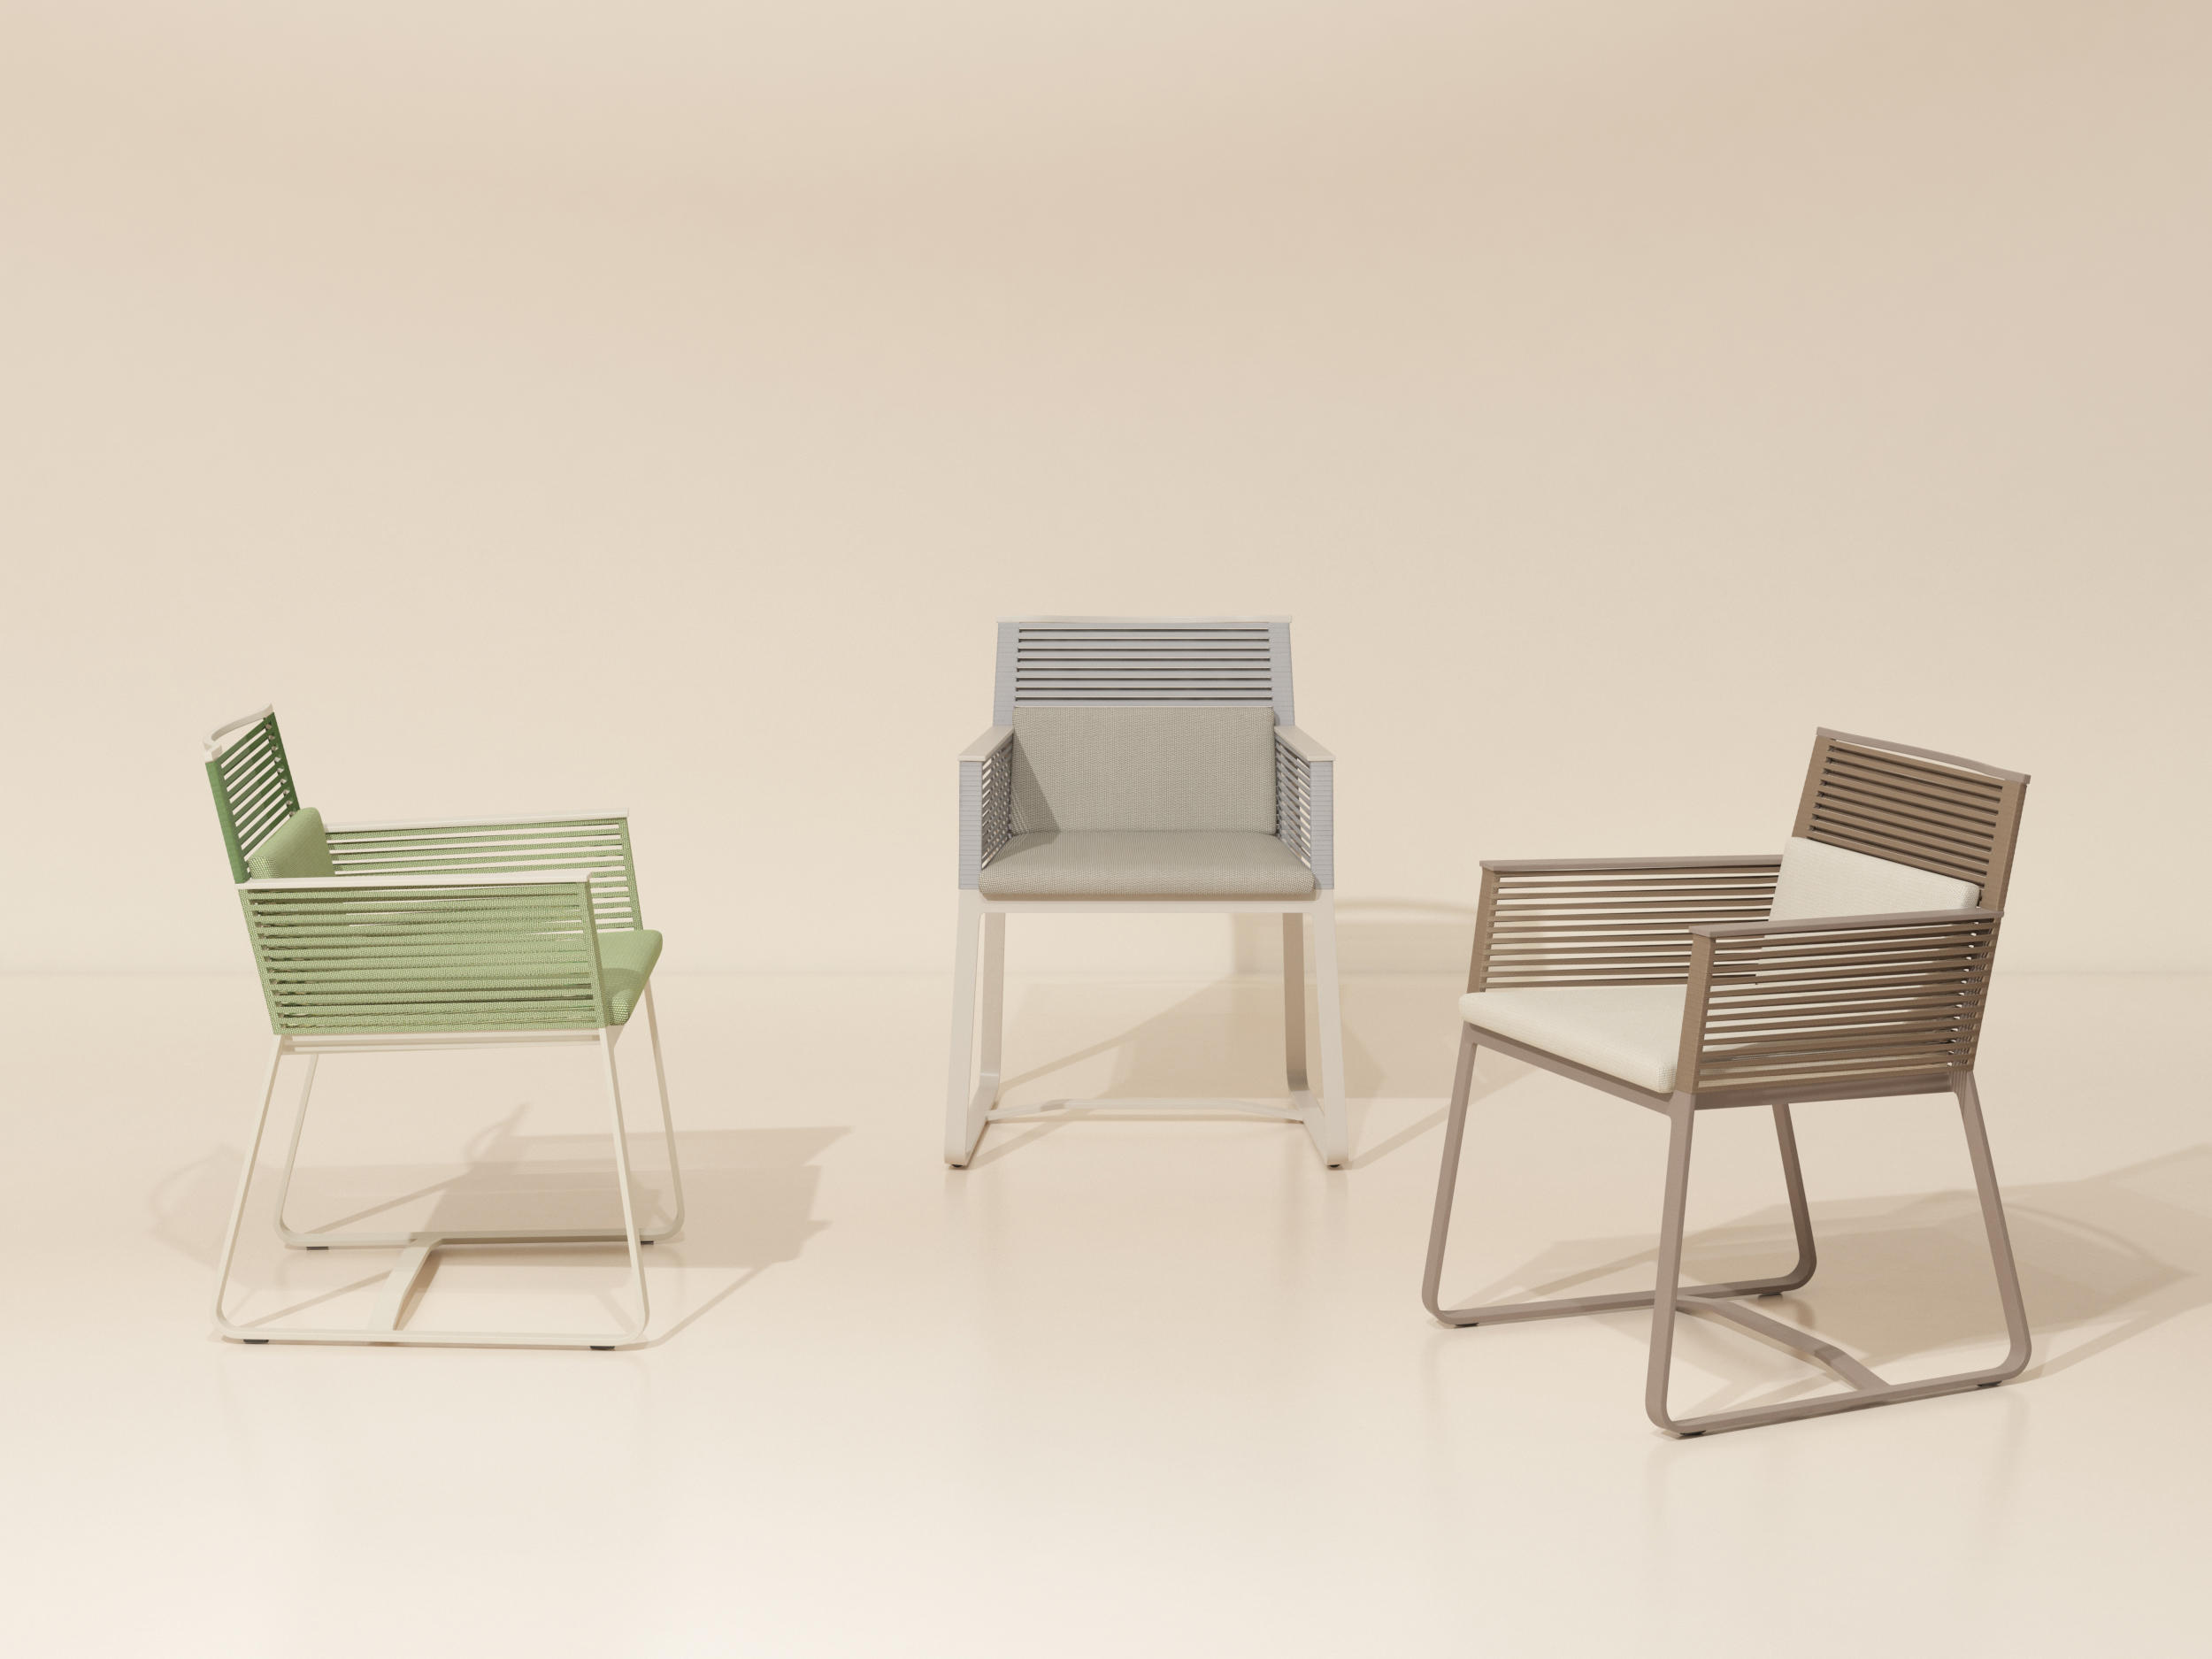 Landscape Dining Armchair By KETTAL | Chairs